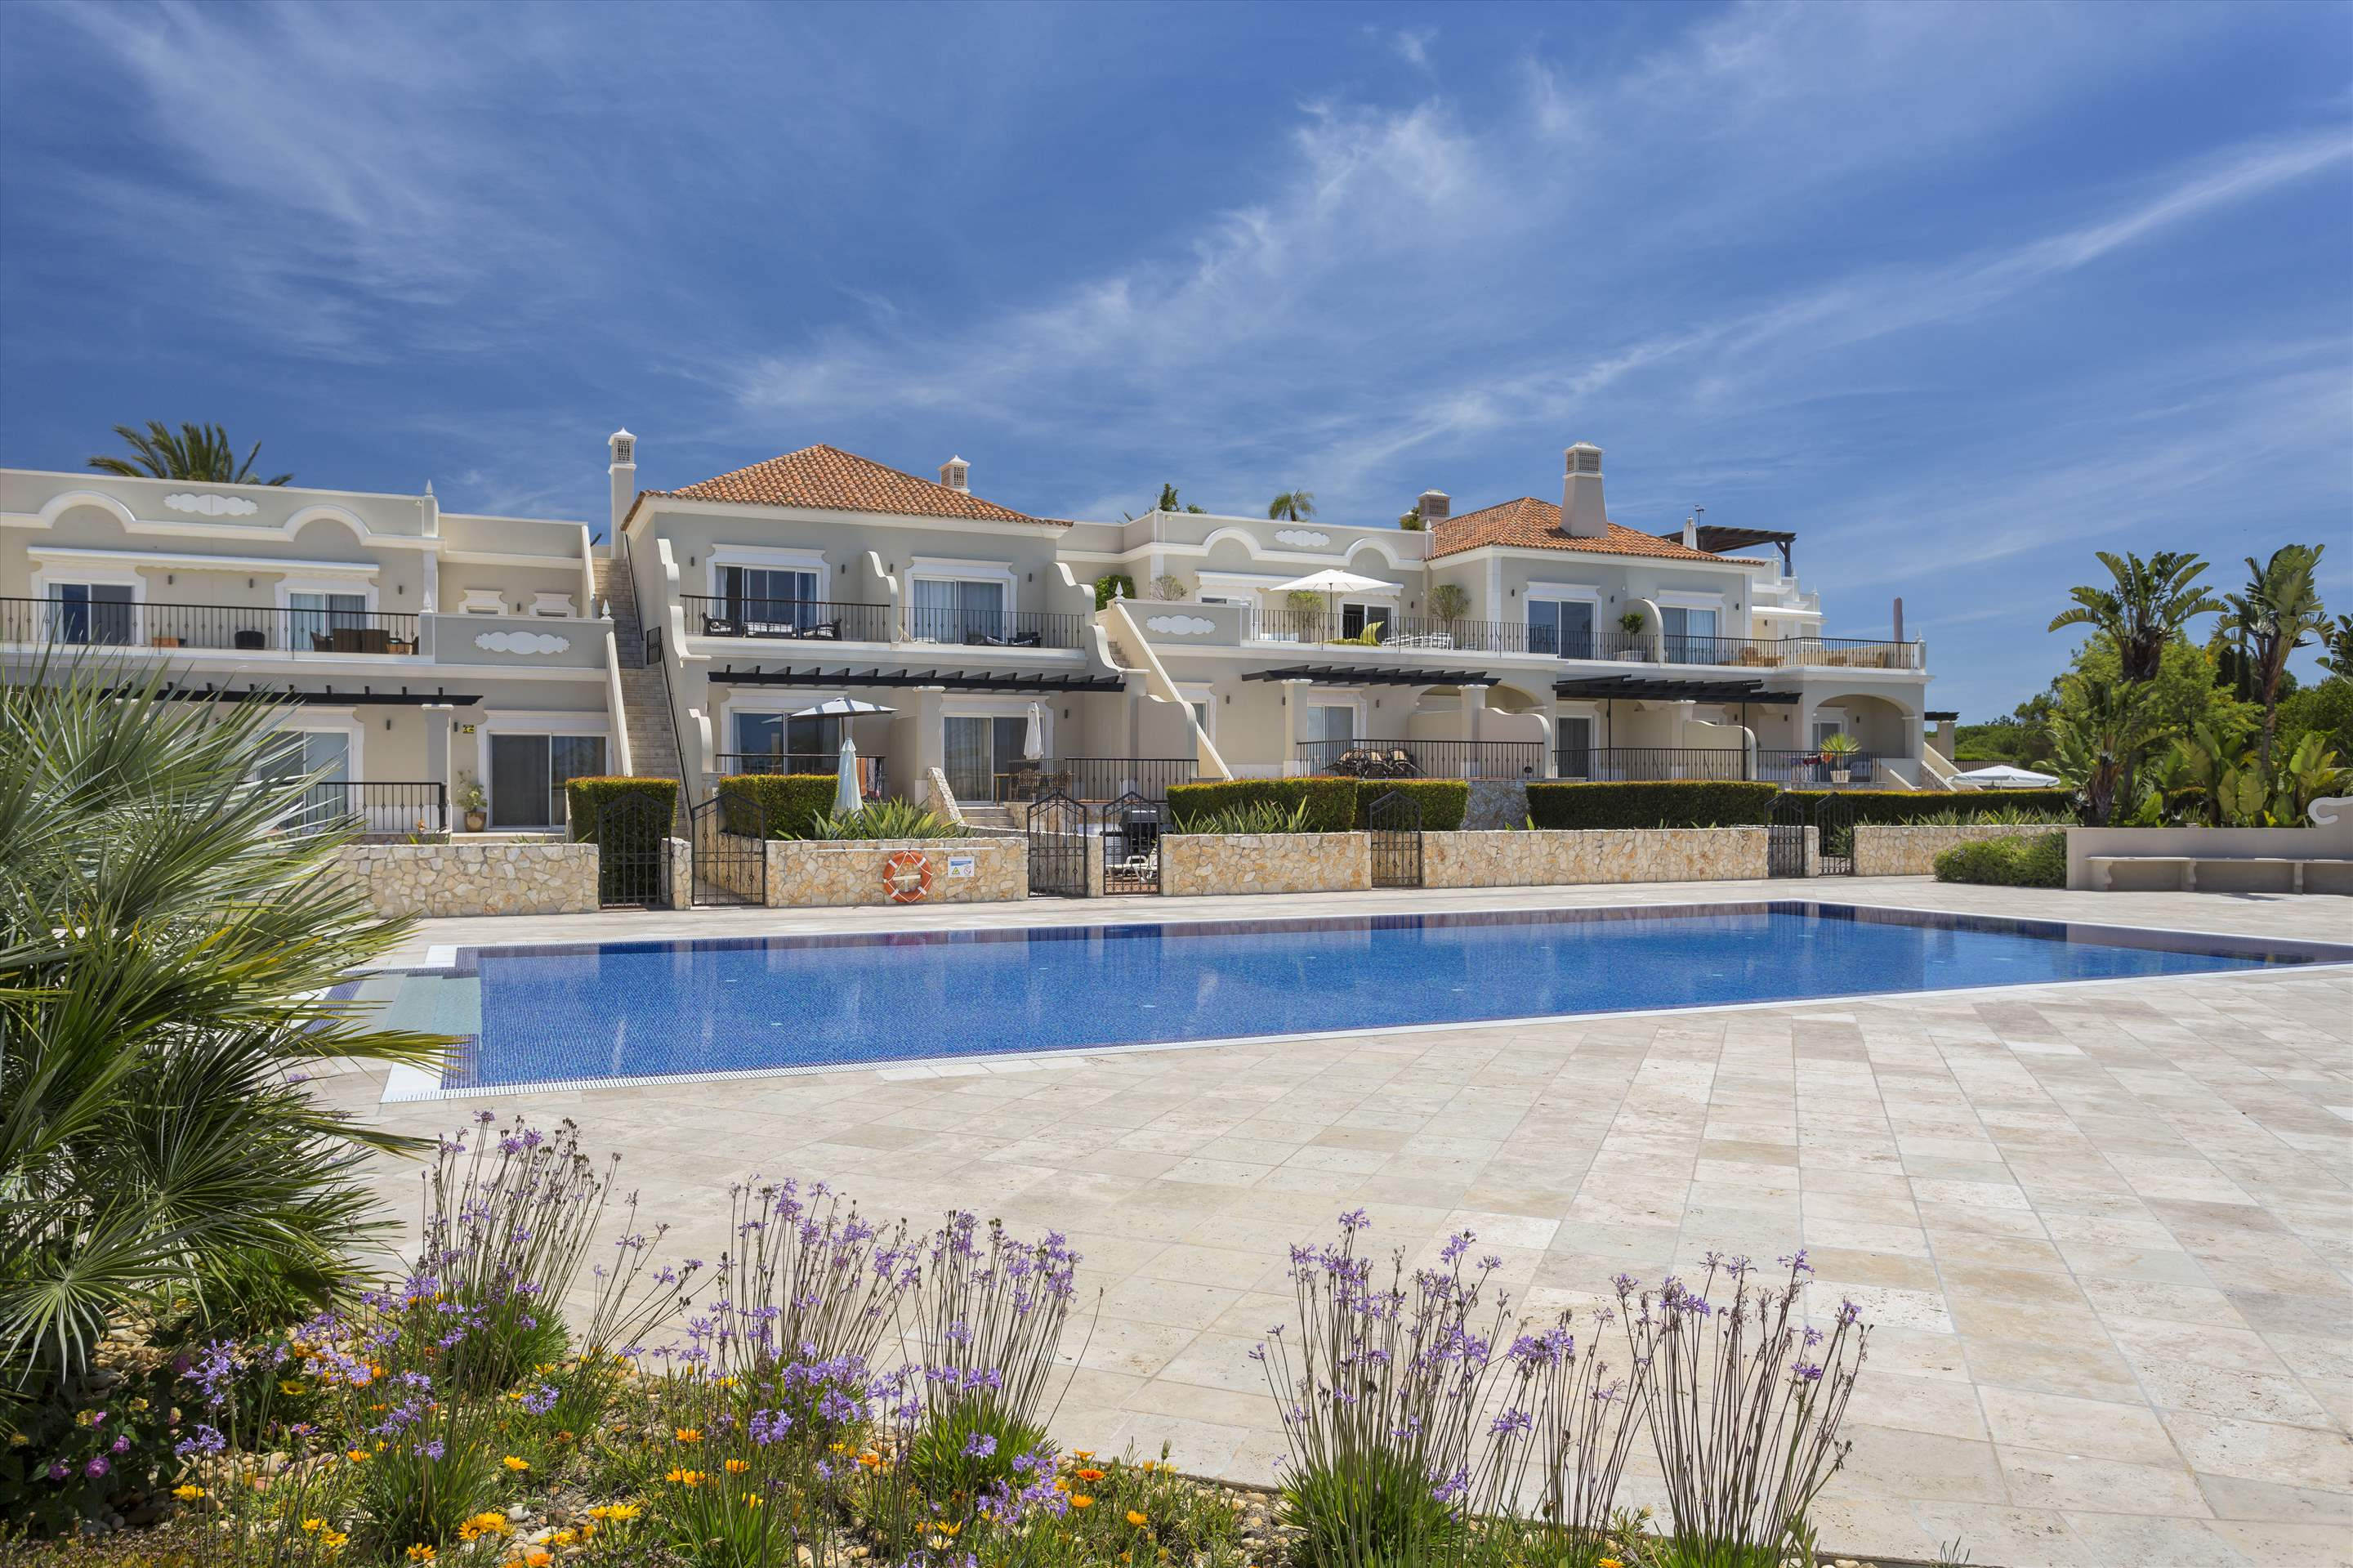 Penthouse Vista Mar, 2 bedroom apartment in Quinta do Lago, Algarve Photo #1